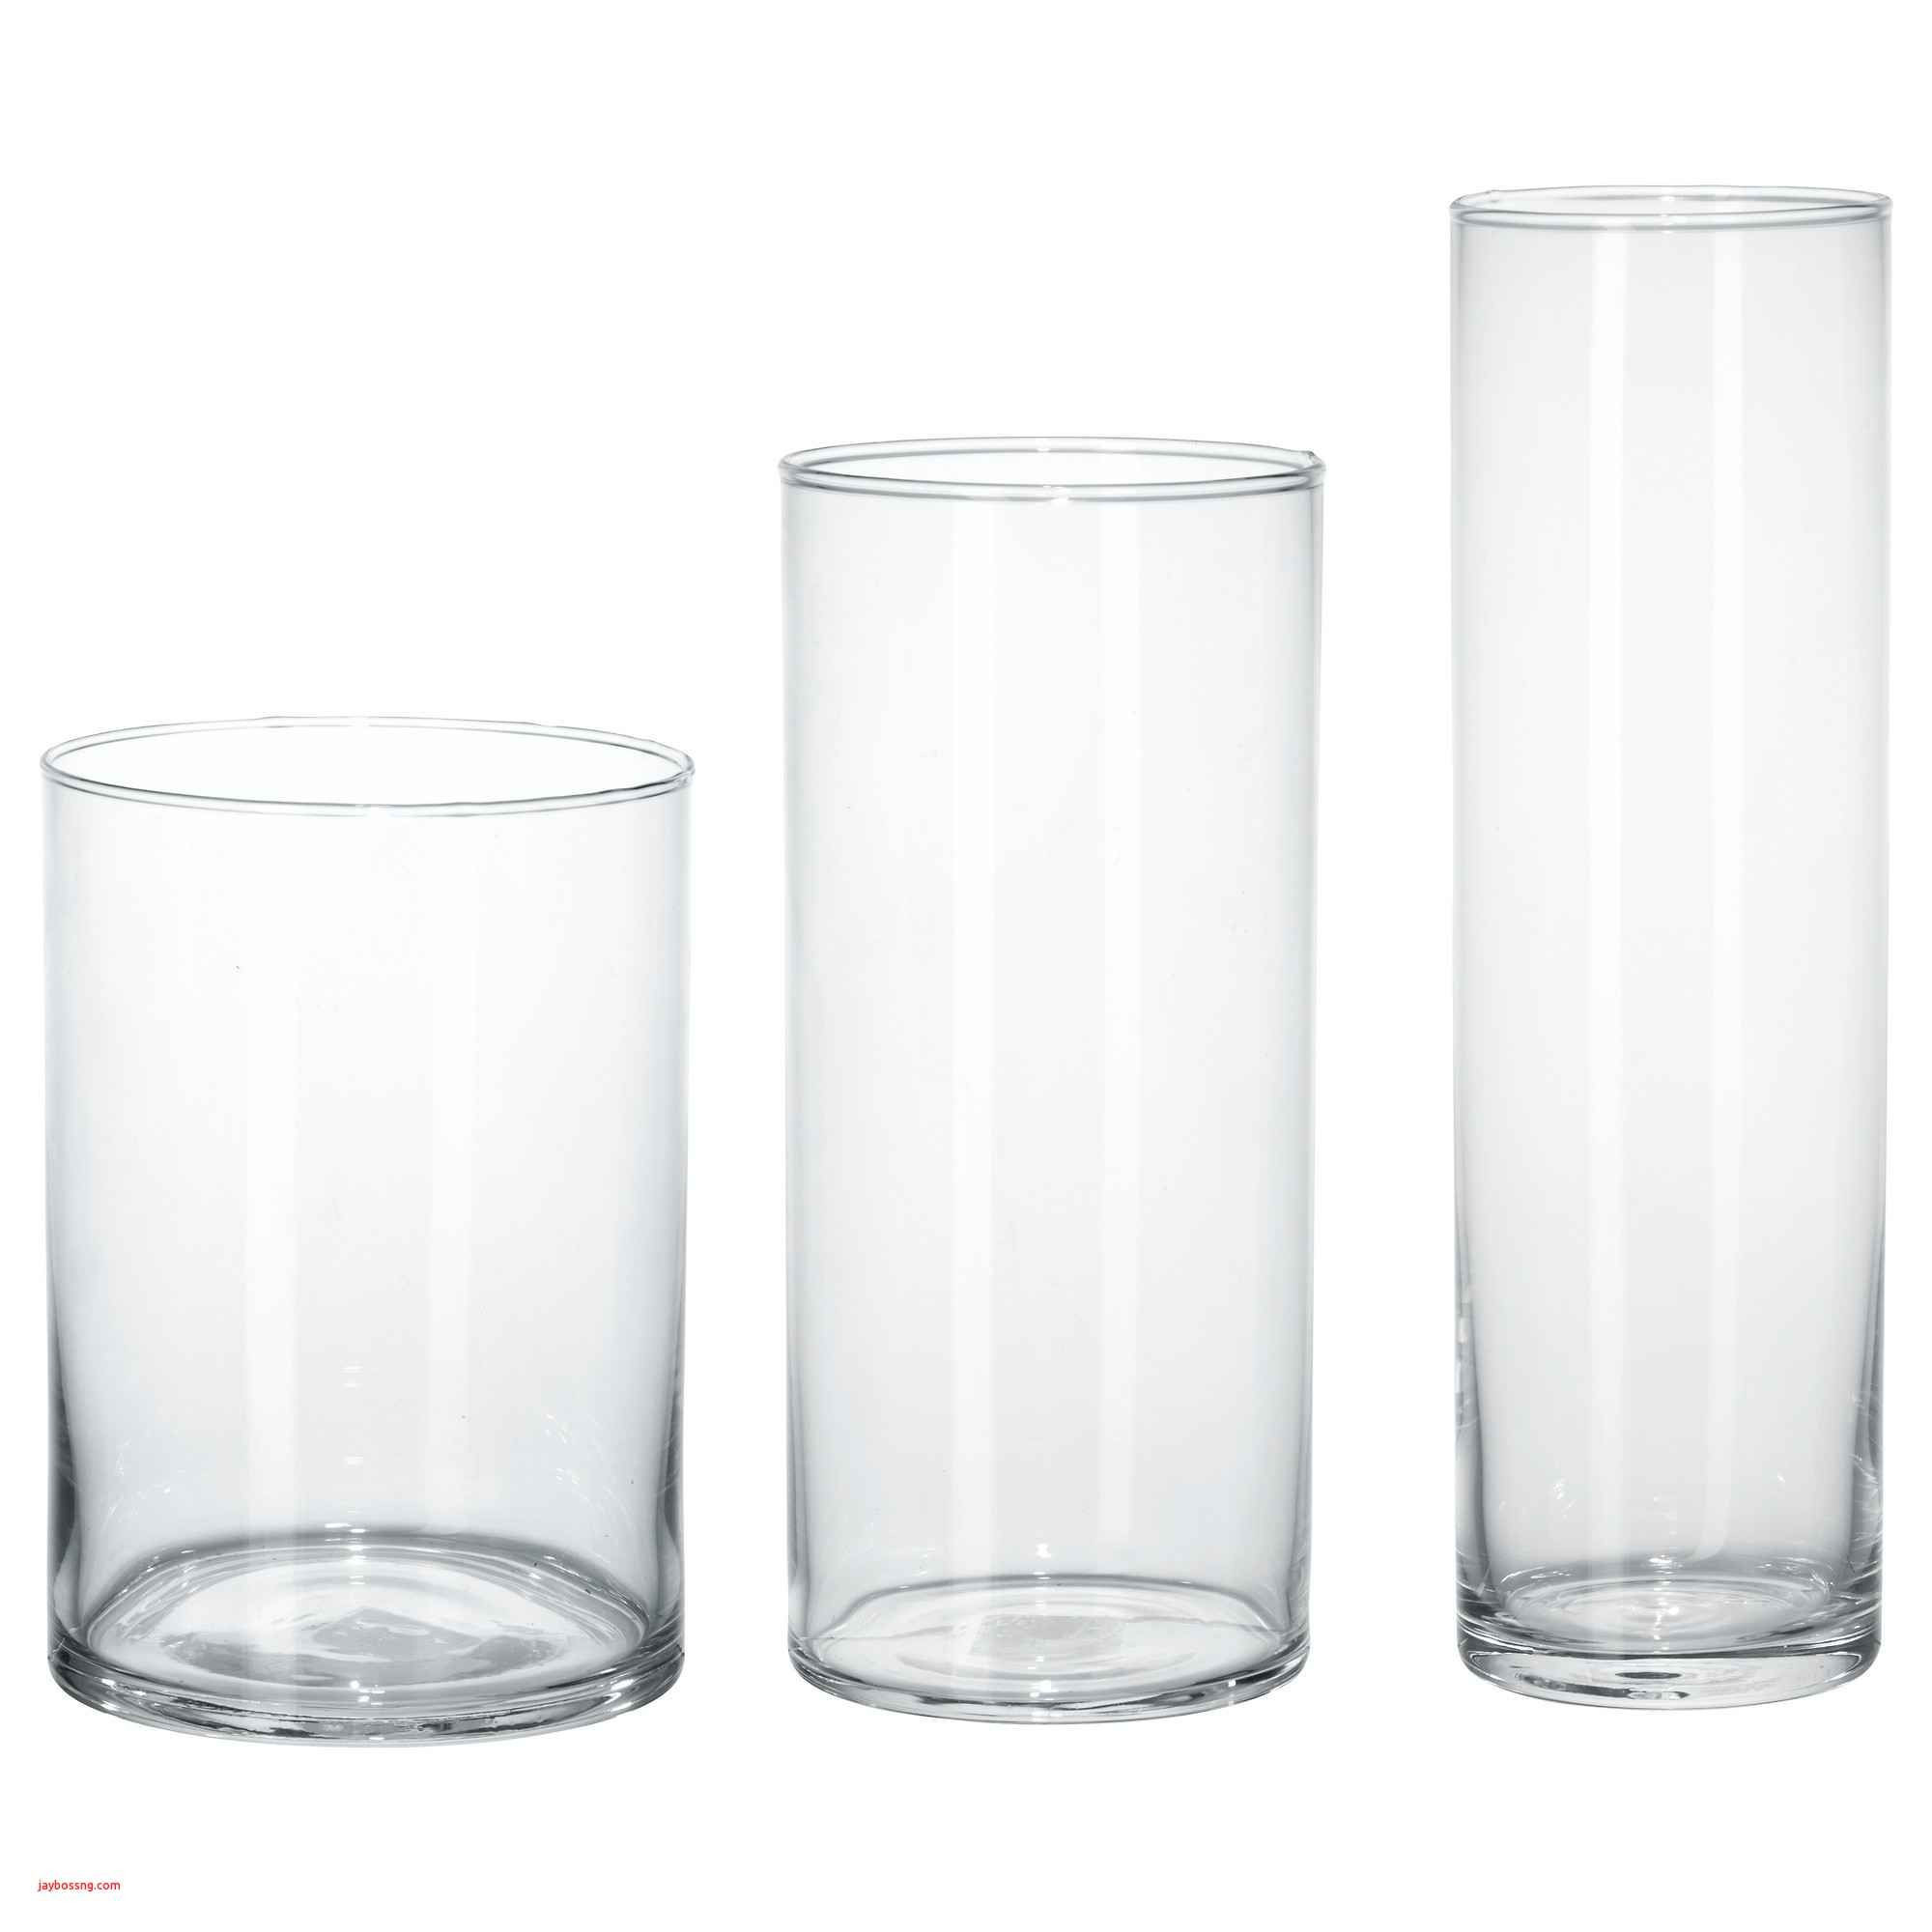 tall thin vases for wedding of brown glass vase fresh ikea white table created pe s5h vases ikea with regard to brown glass vase fresh ikea white table created pe s5h vases ikea vase i 0d bladet